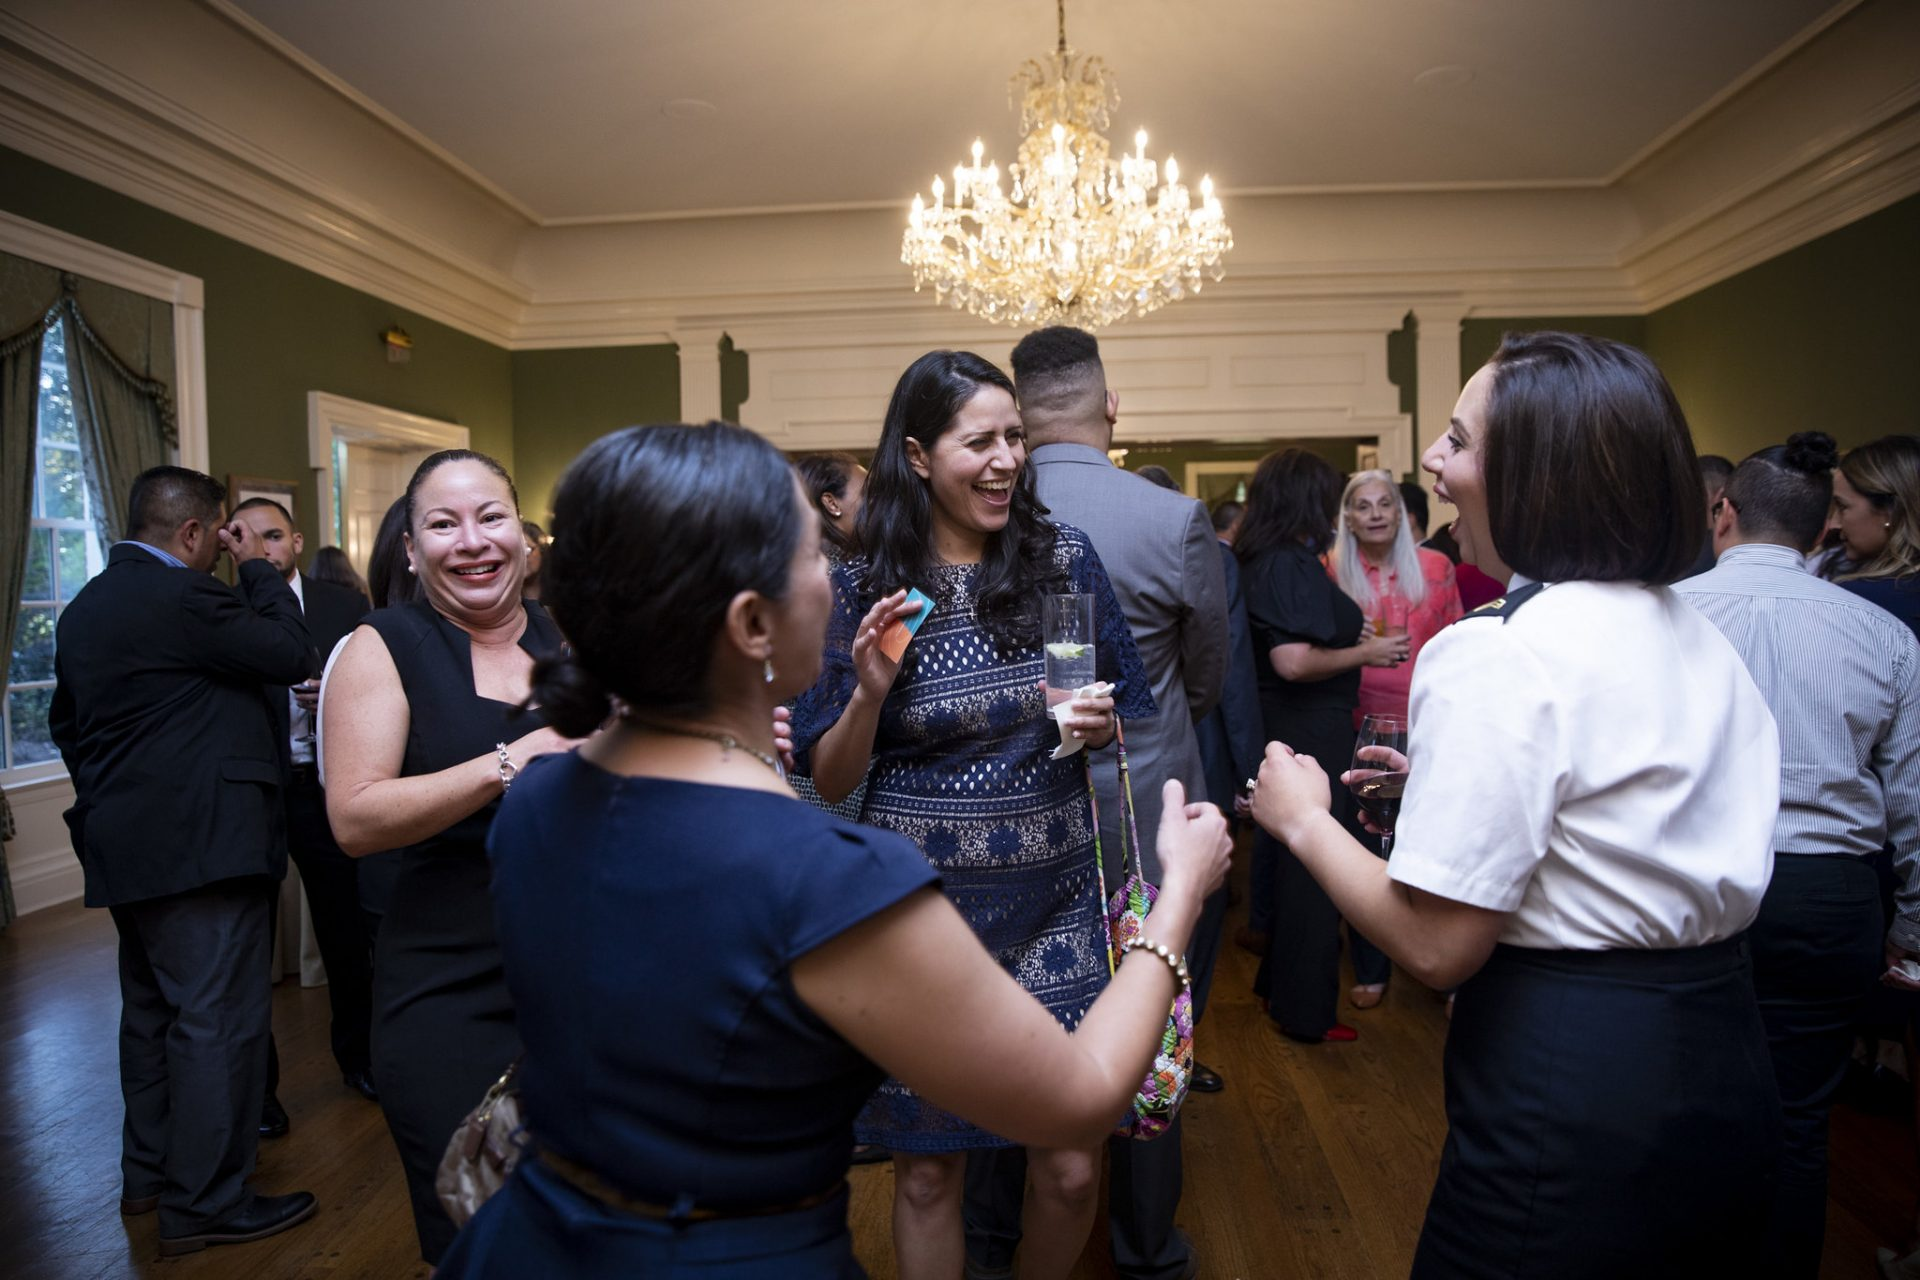 People celebrate Hispanic Heritage Month at the Governor's Residence in Harrisburg on Sept. 24, 2019.